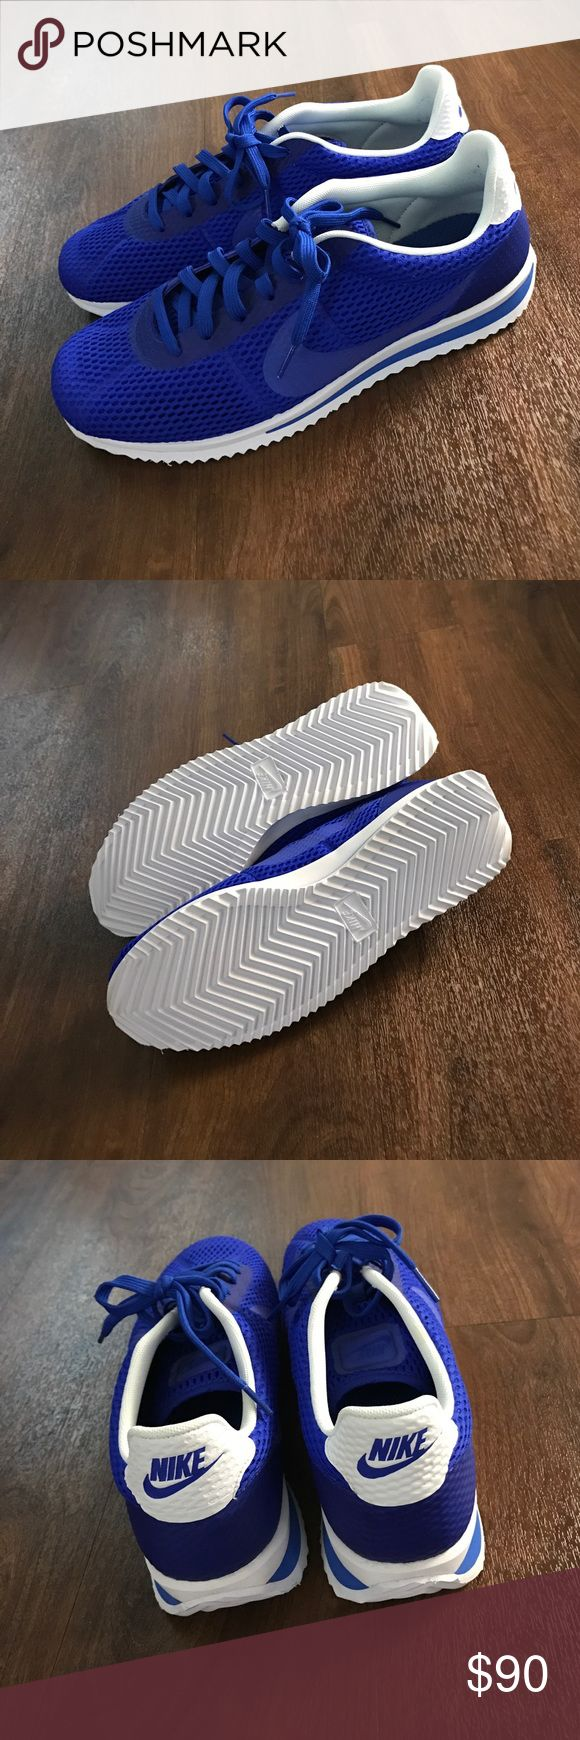 *NEVER WORN* Men's Blue Nike Cortez - Size 10.5 I'm selling these for my husband.  These are the Nike Cortez Ultra Breathe casual shoes in size 10.5. Never worn! Does not come with the original box. Nike Shoes Sneakers